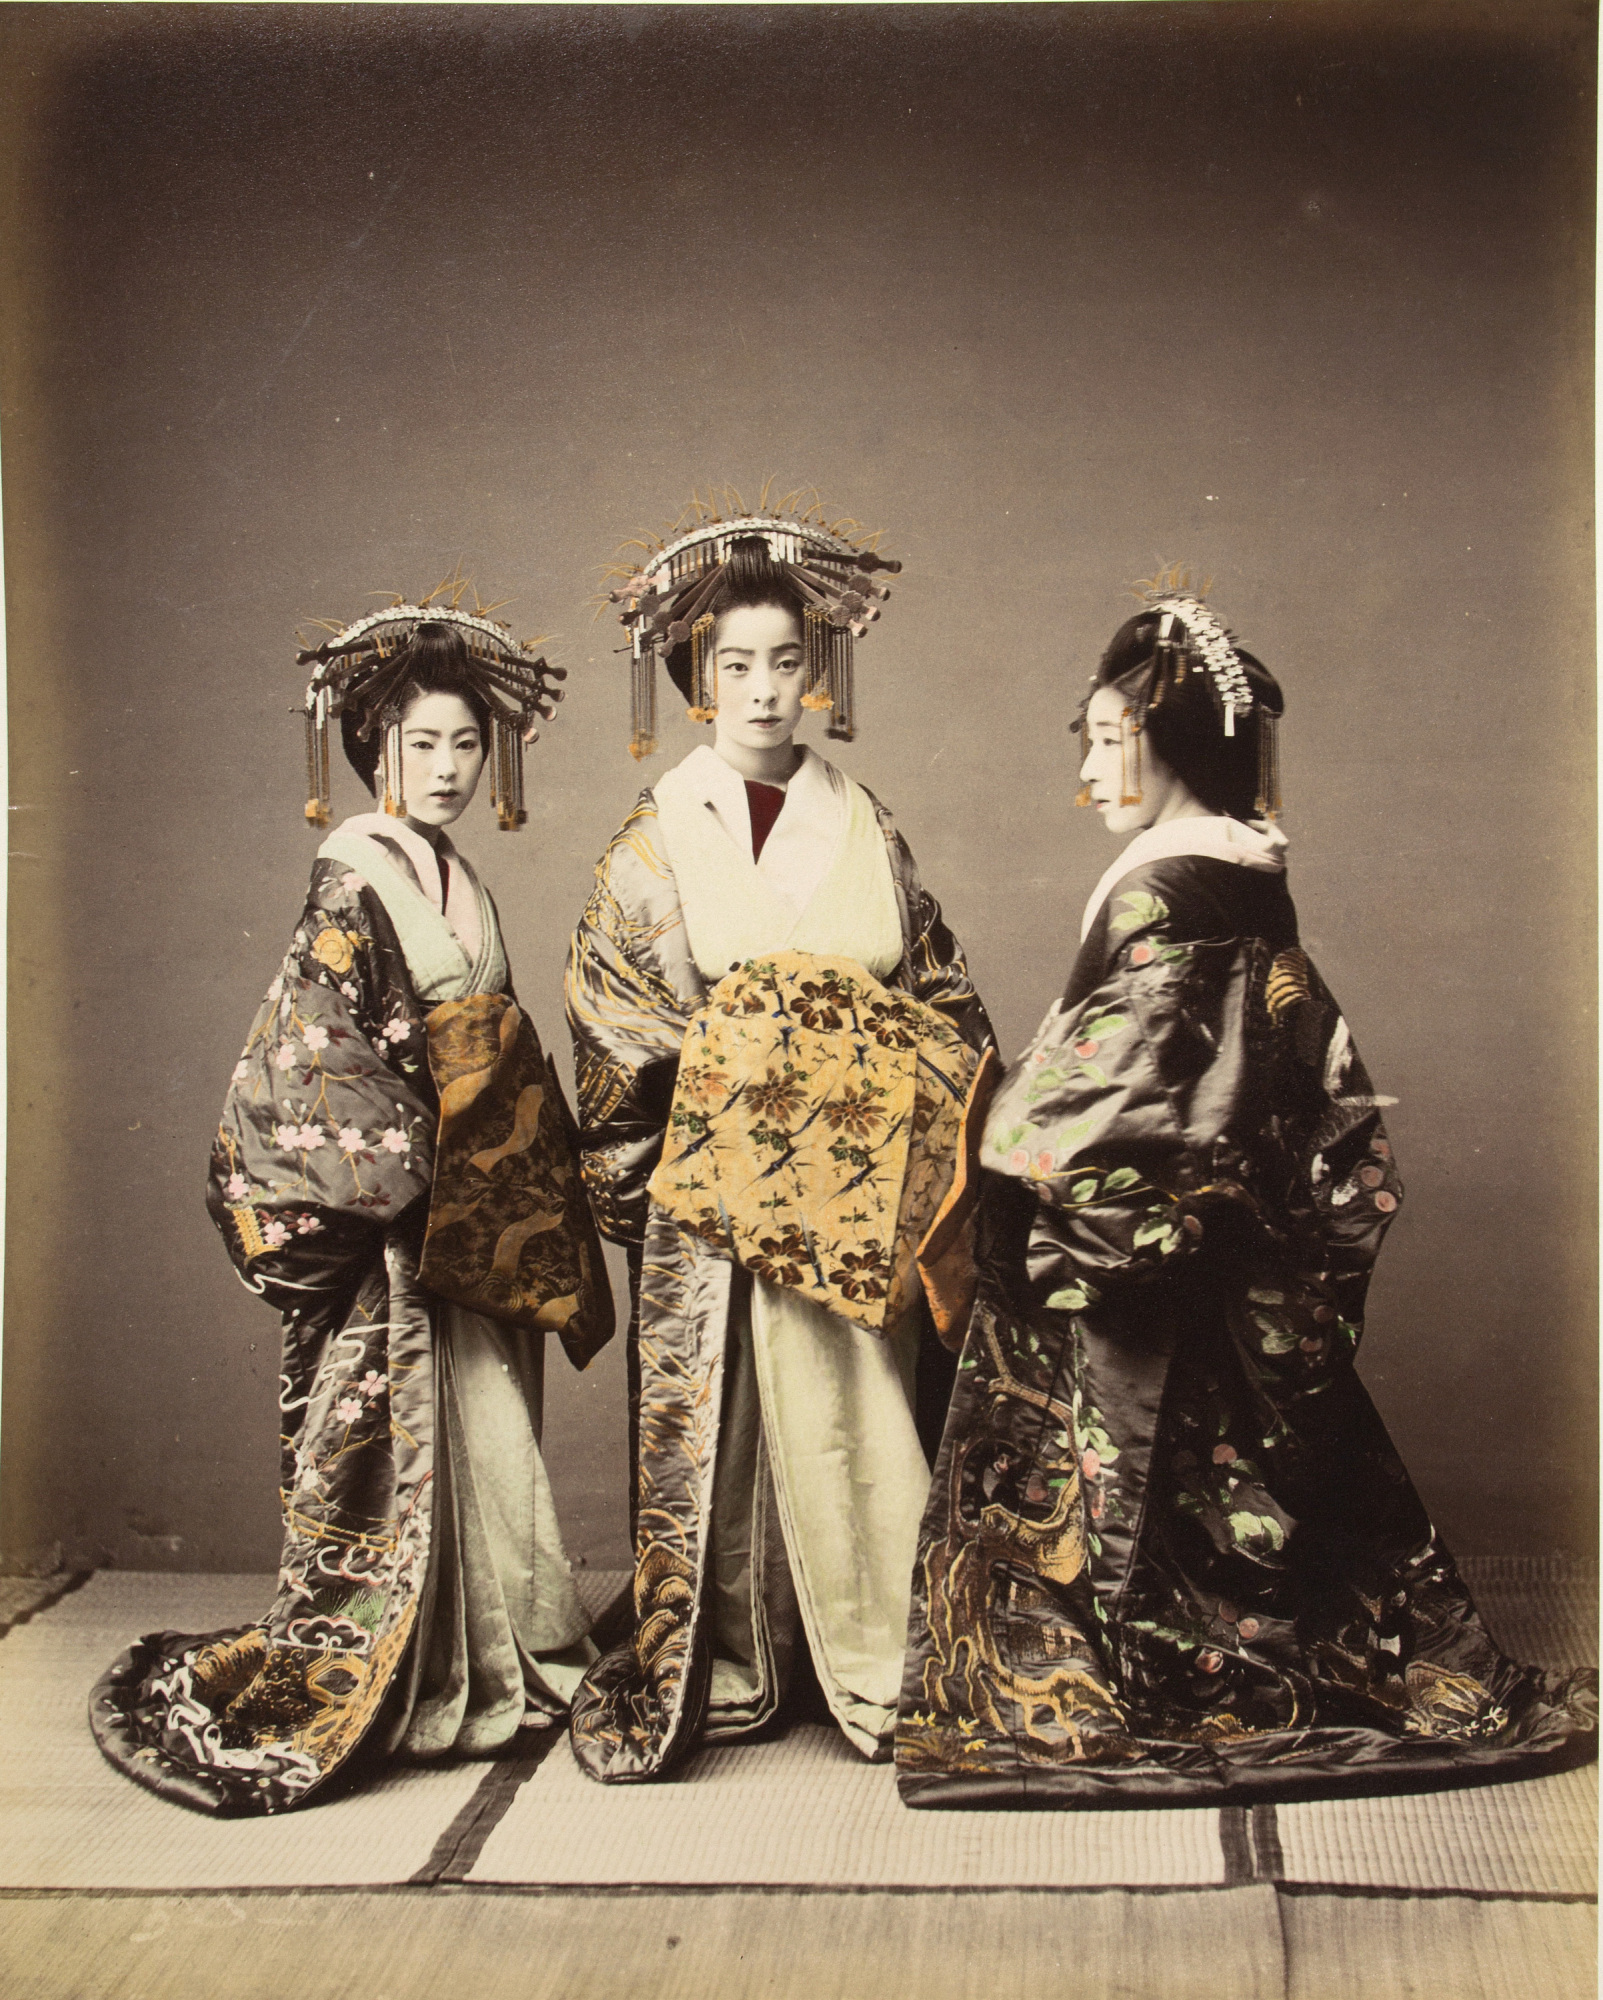 images for Three beautifully dressed women, 1860 - ca. 1900. graphic